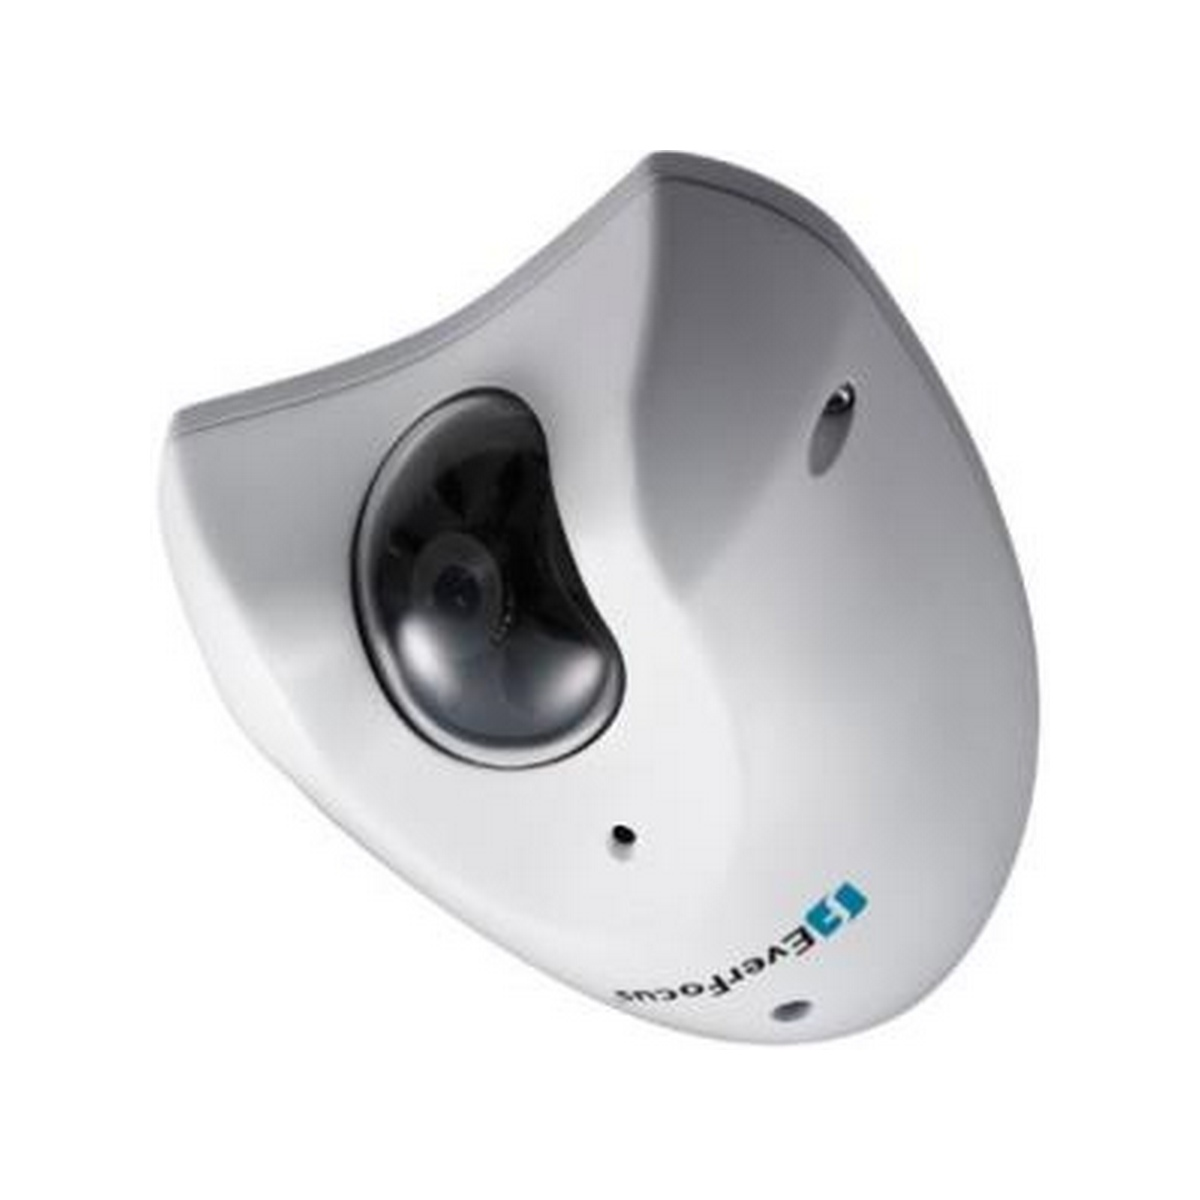 Everfocus EHN1320/6 3MP, Rugged IP Dome, 6mm, 12V & PoE, N (not a stocking item, advance order needed)